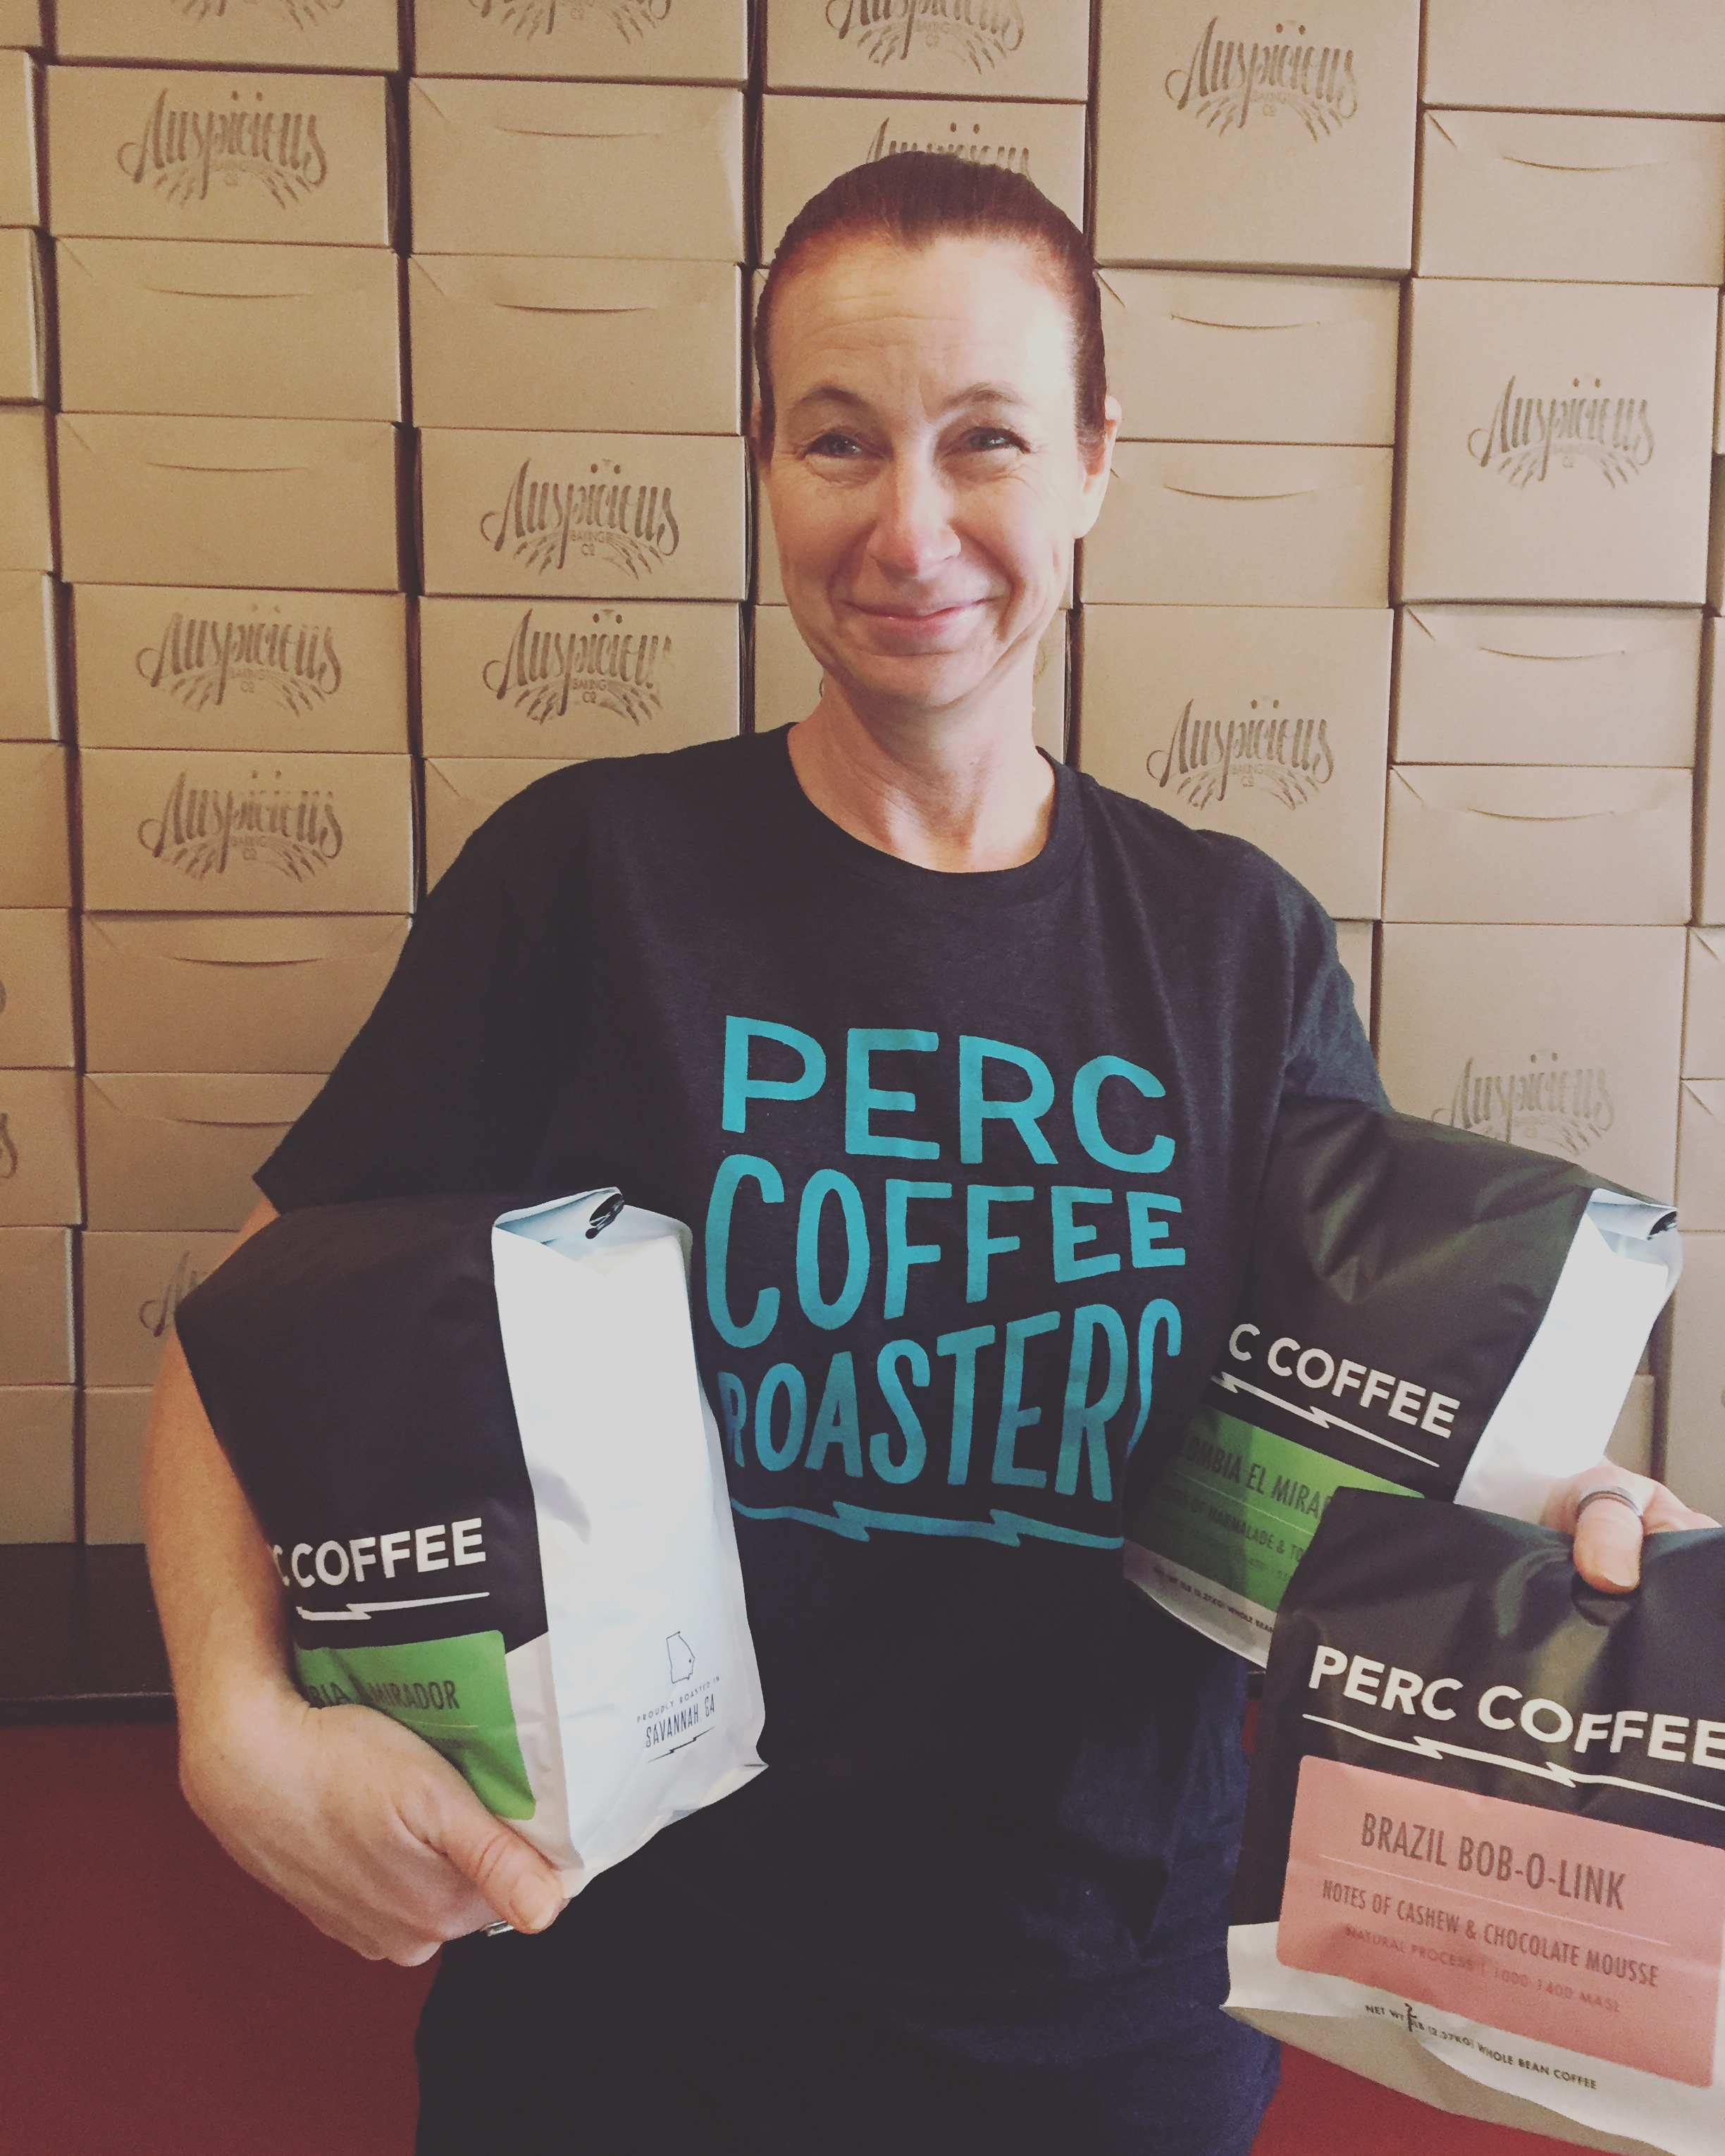 We Love Perc Coffee!